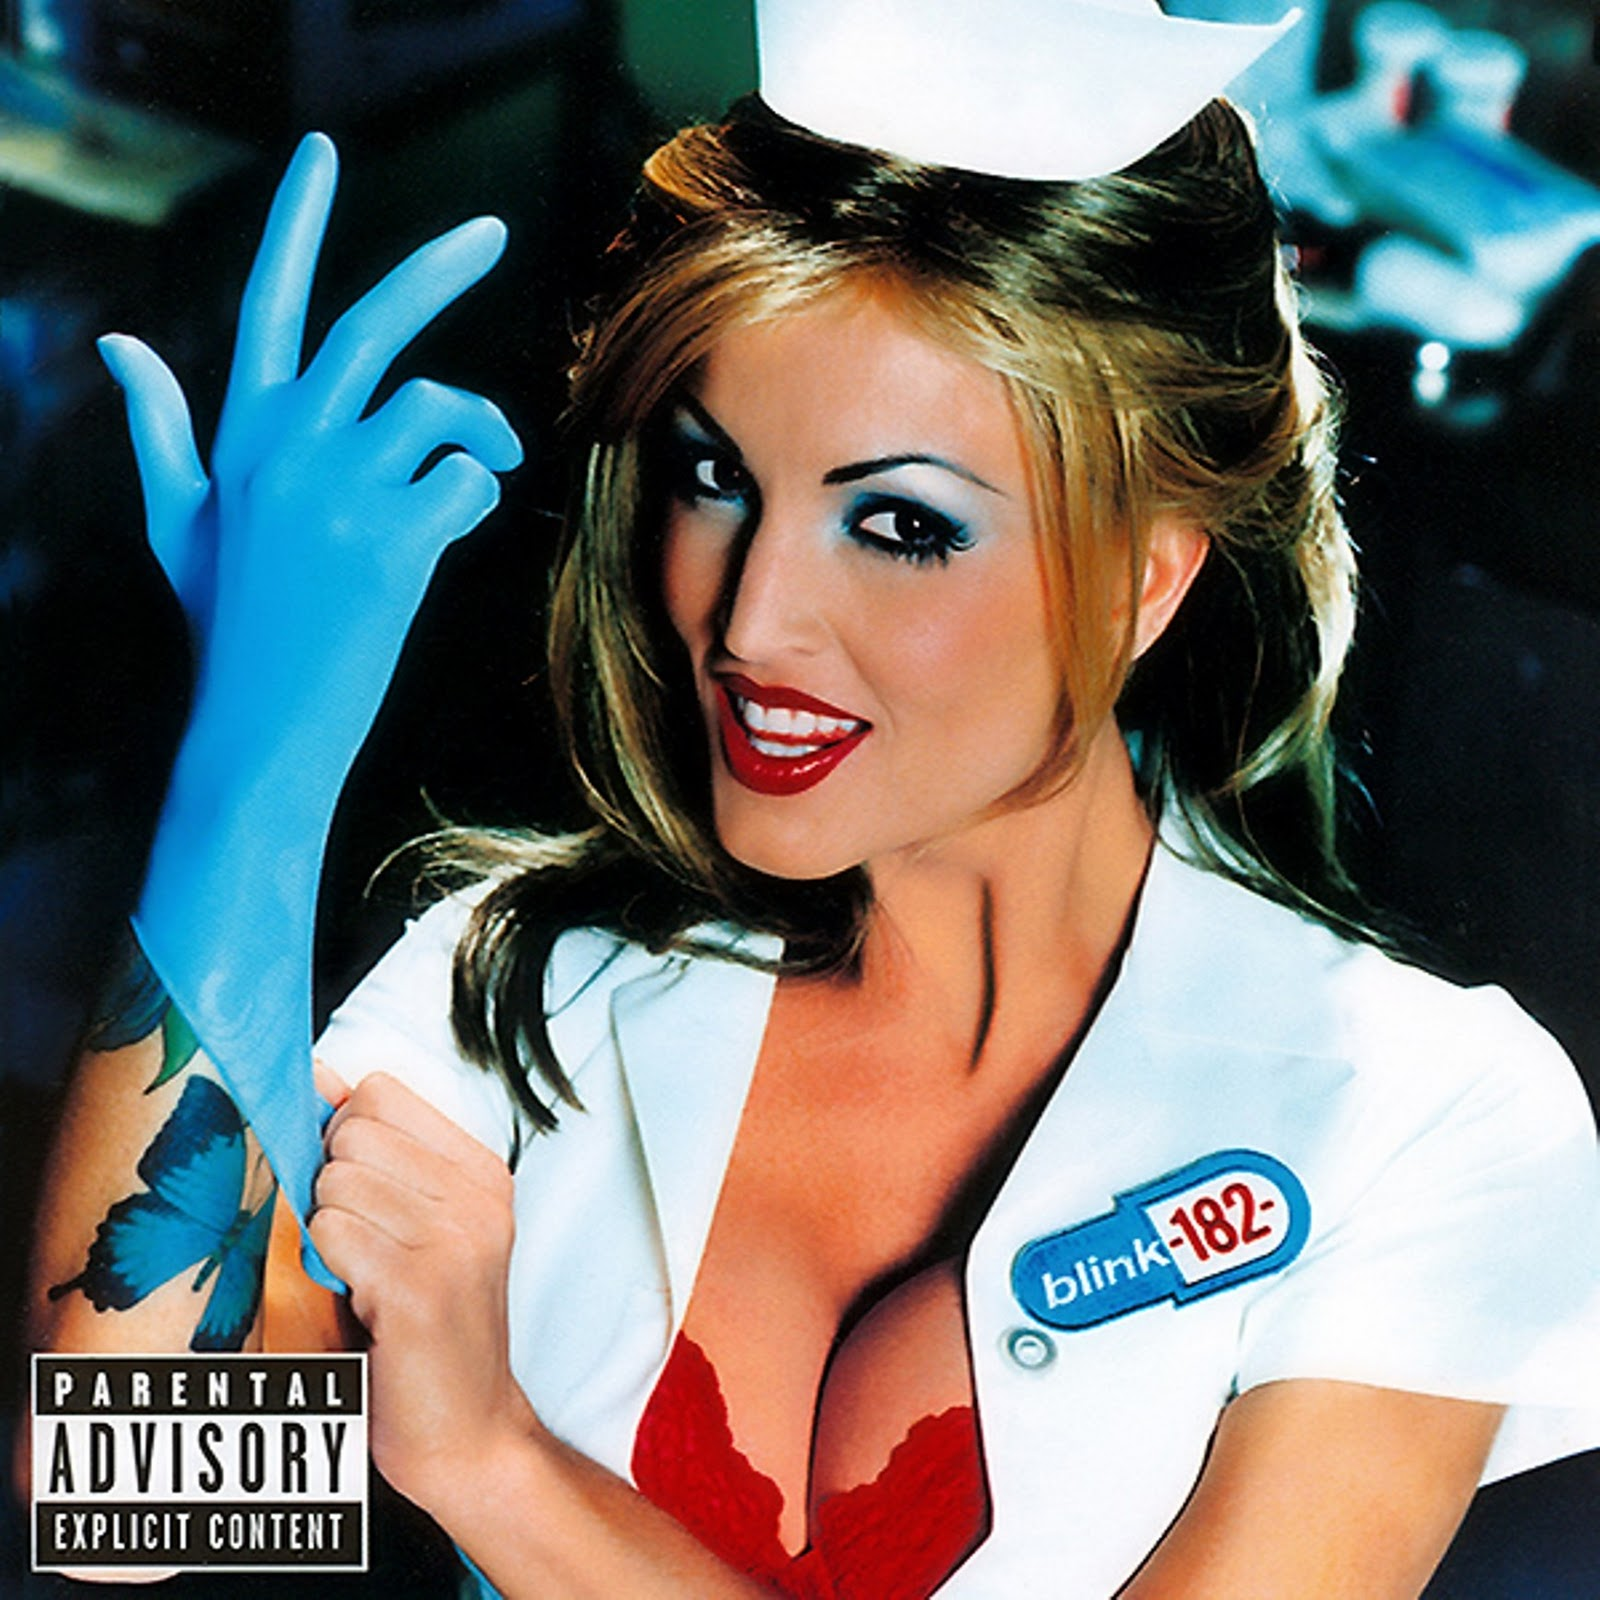 blink-182 – Enema of the State – 15 Year Anniversary Retrospective